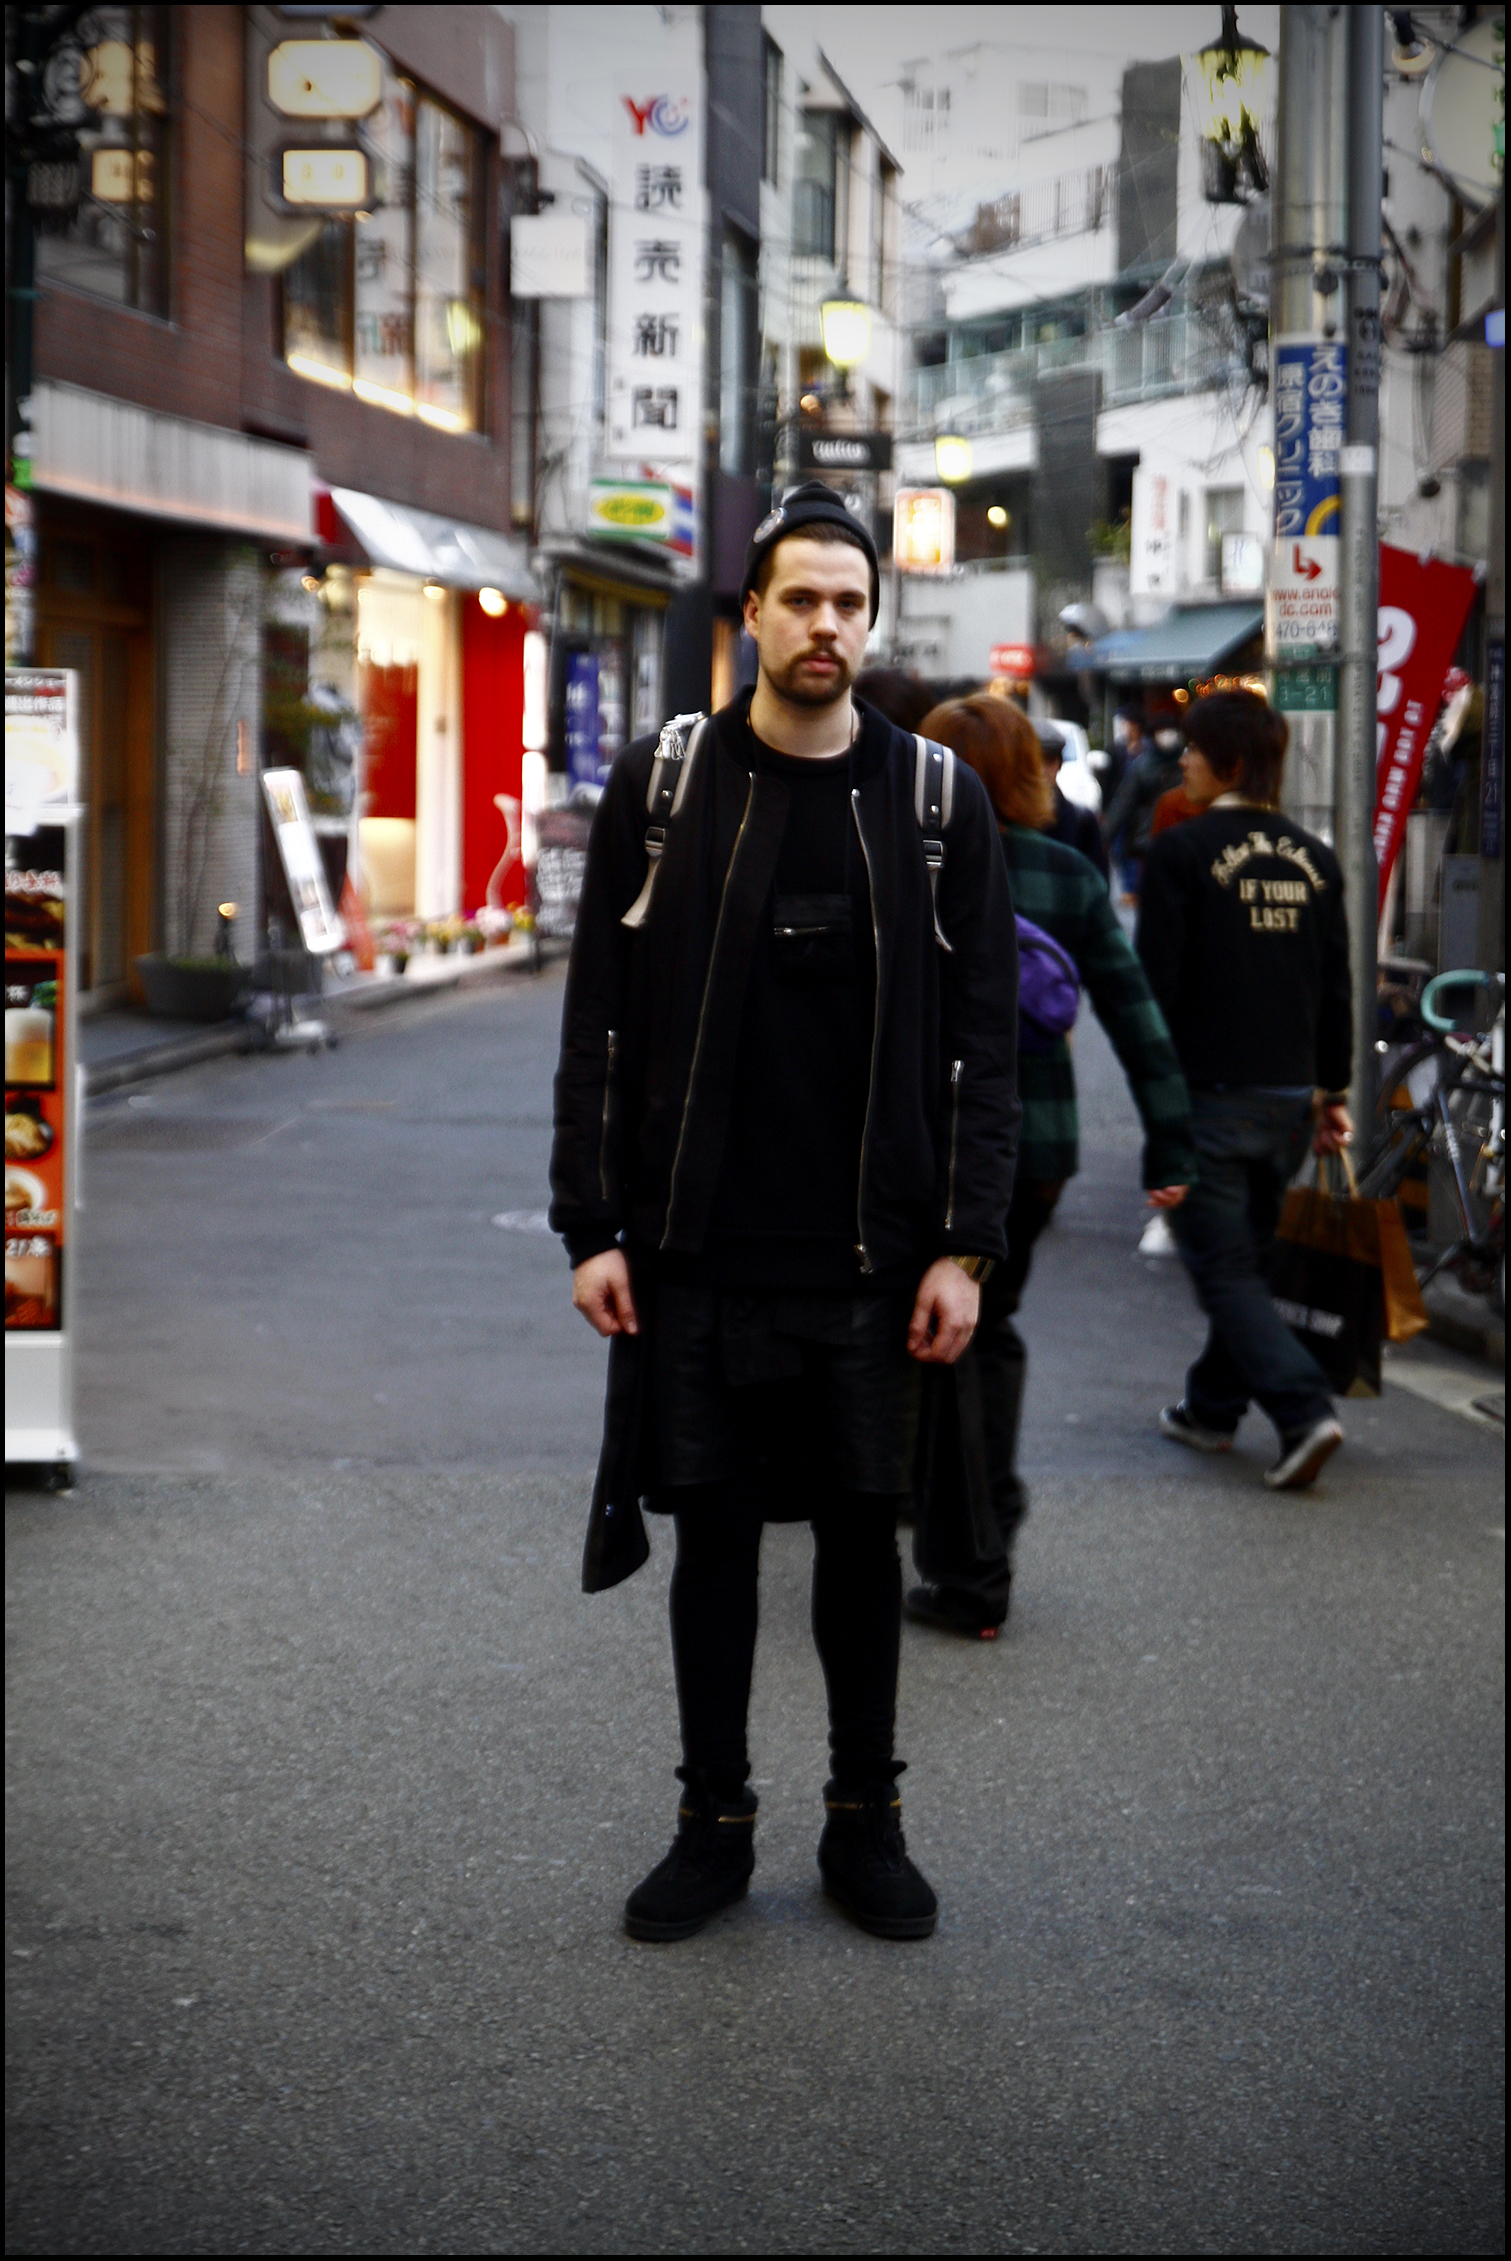 Tuukka13 - WDYWT - Greetings from Tokyo 03-2012 - Givenchy Sneakers Pullover Badge, <a href=